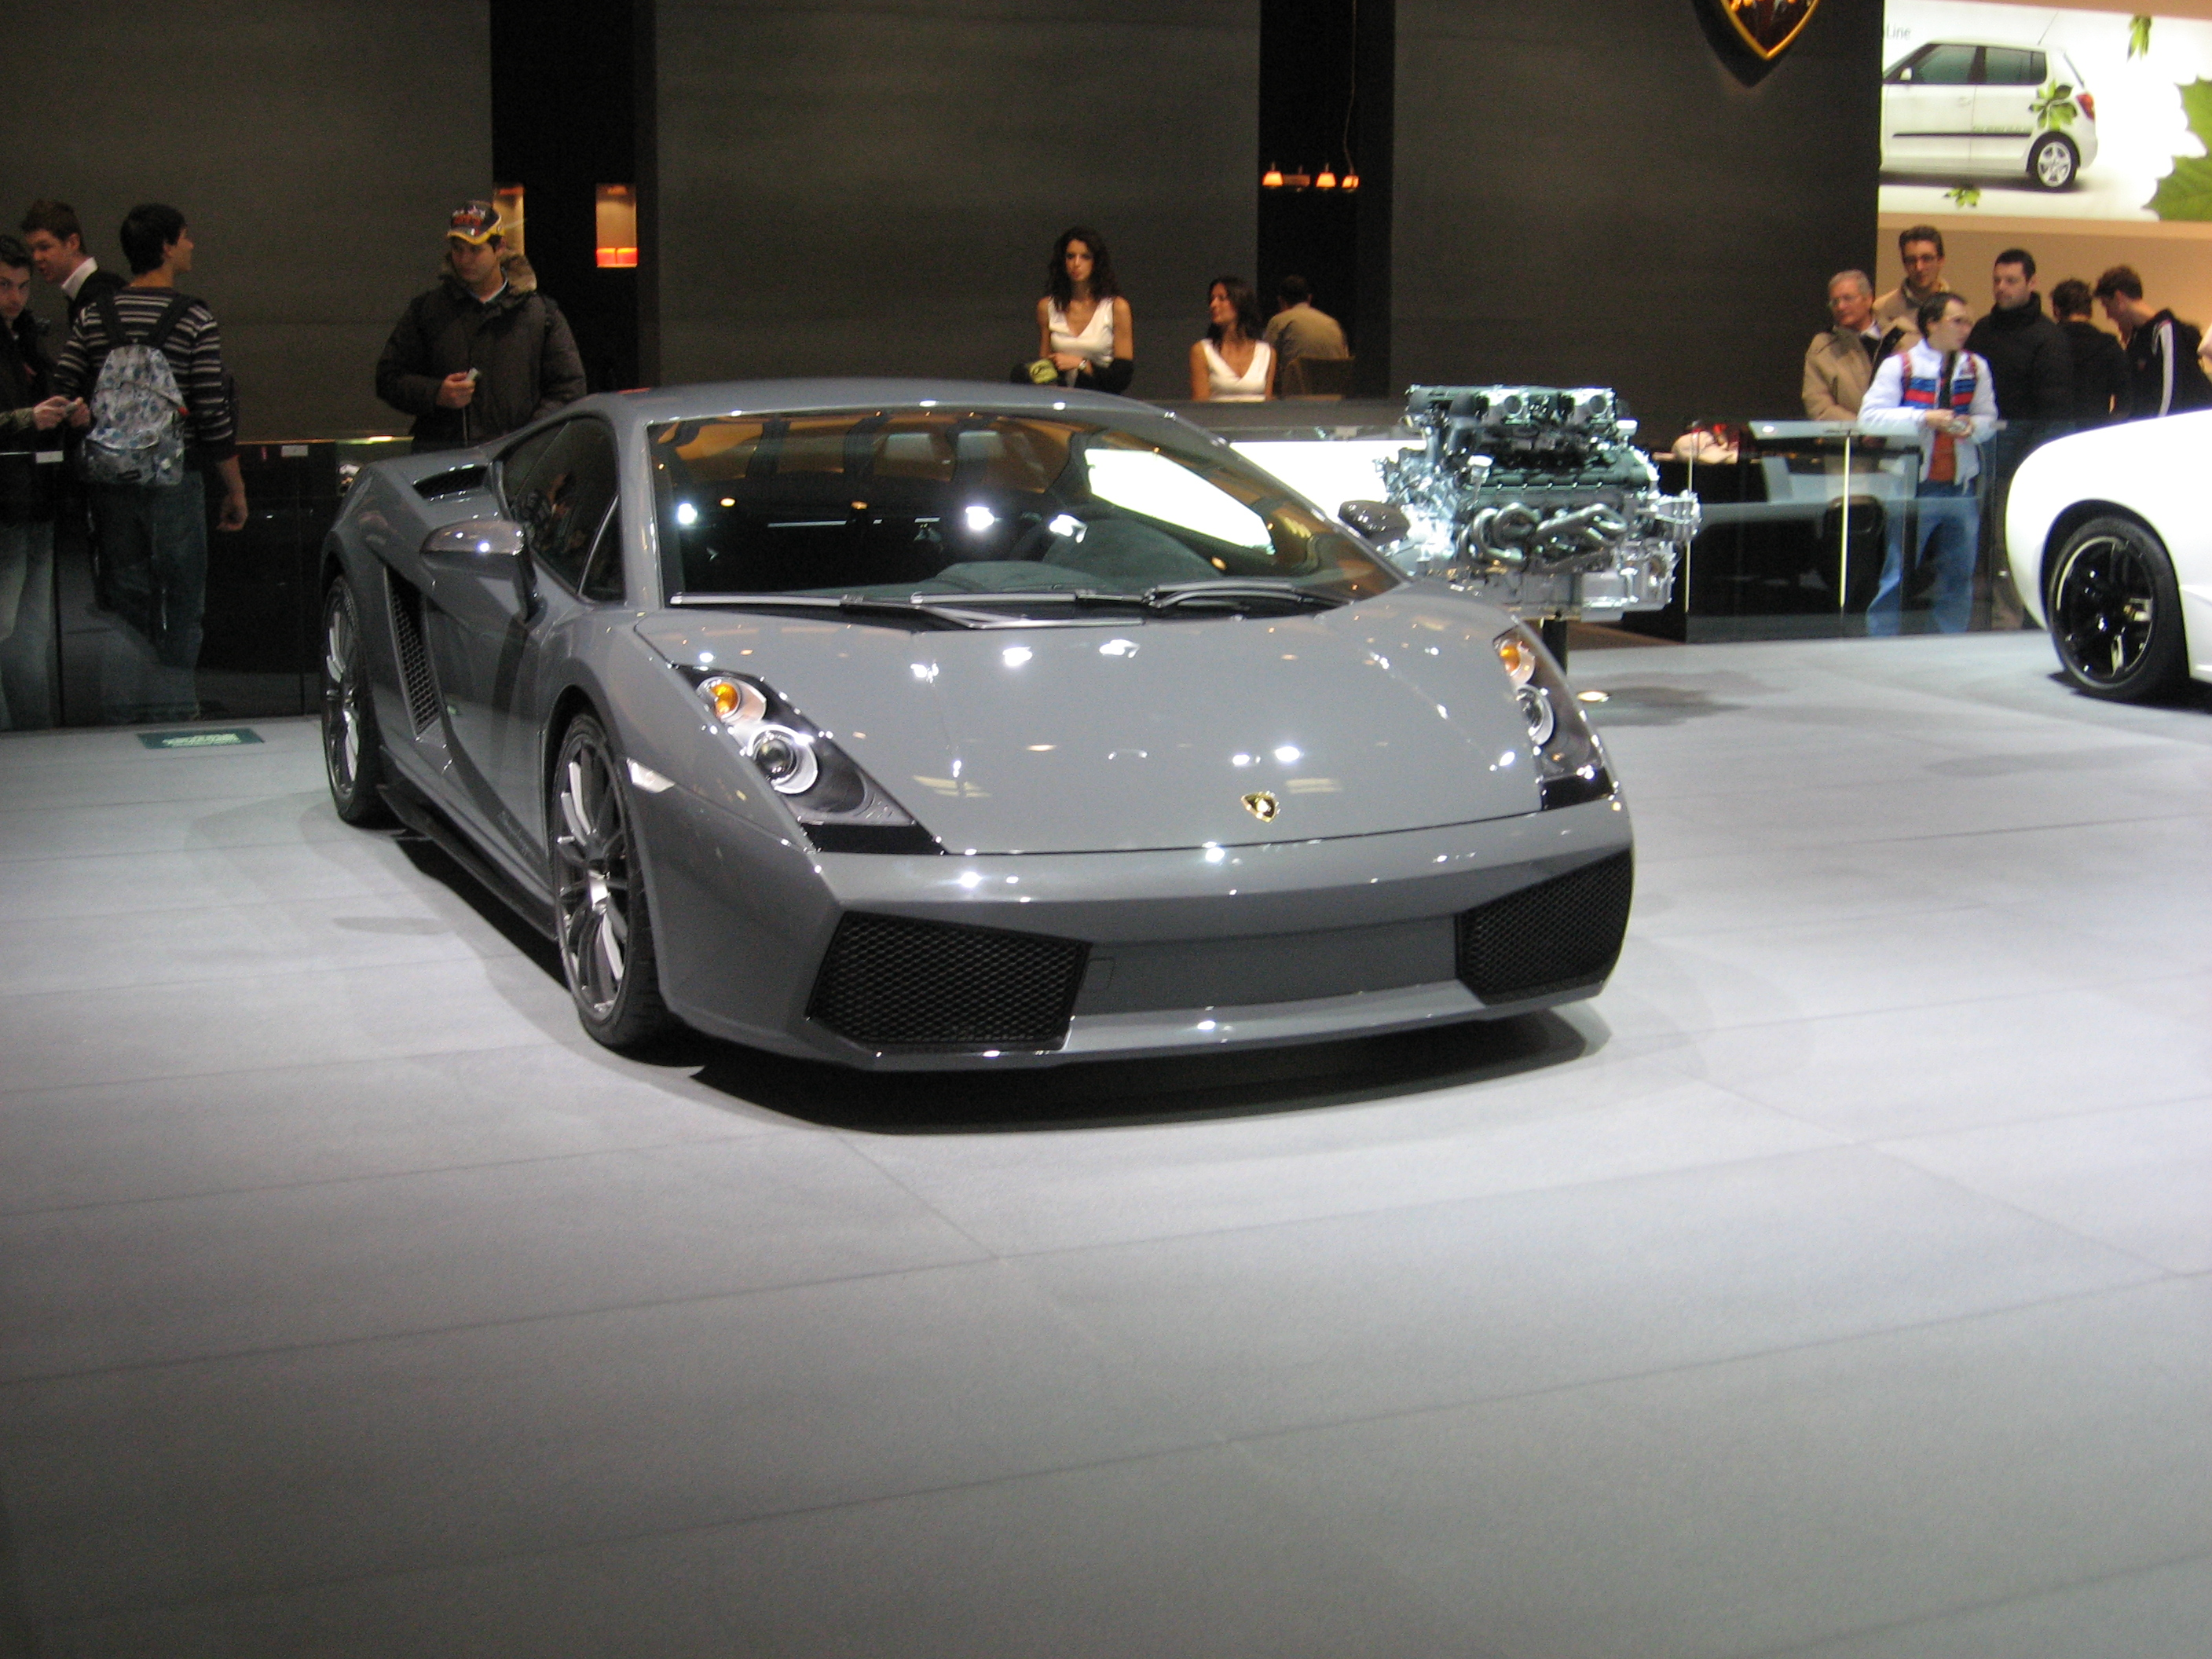 Lamborghini Gallardo Superleggera Innovation and Efficiency Pictures